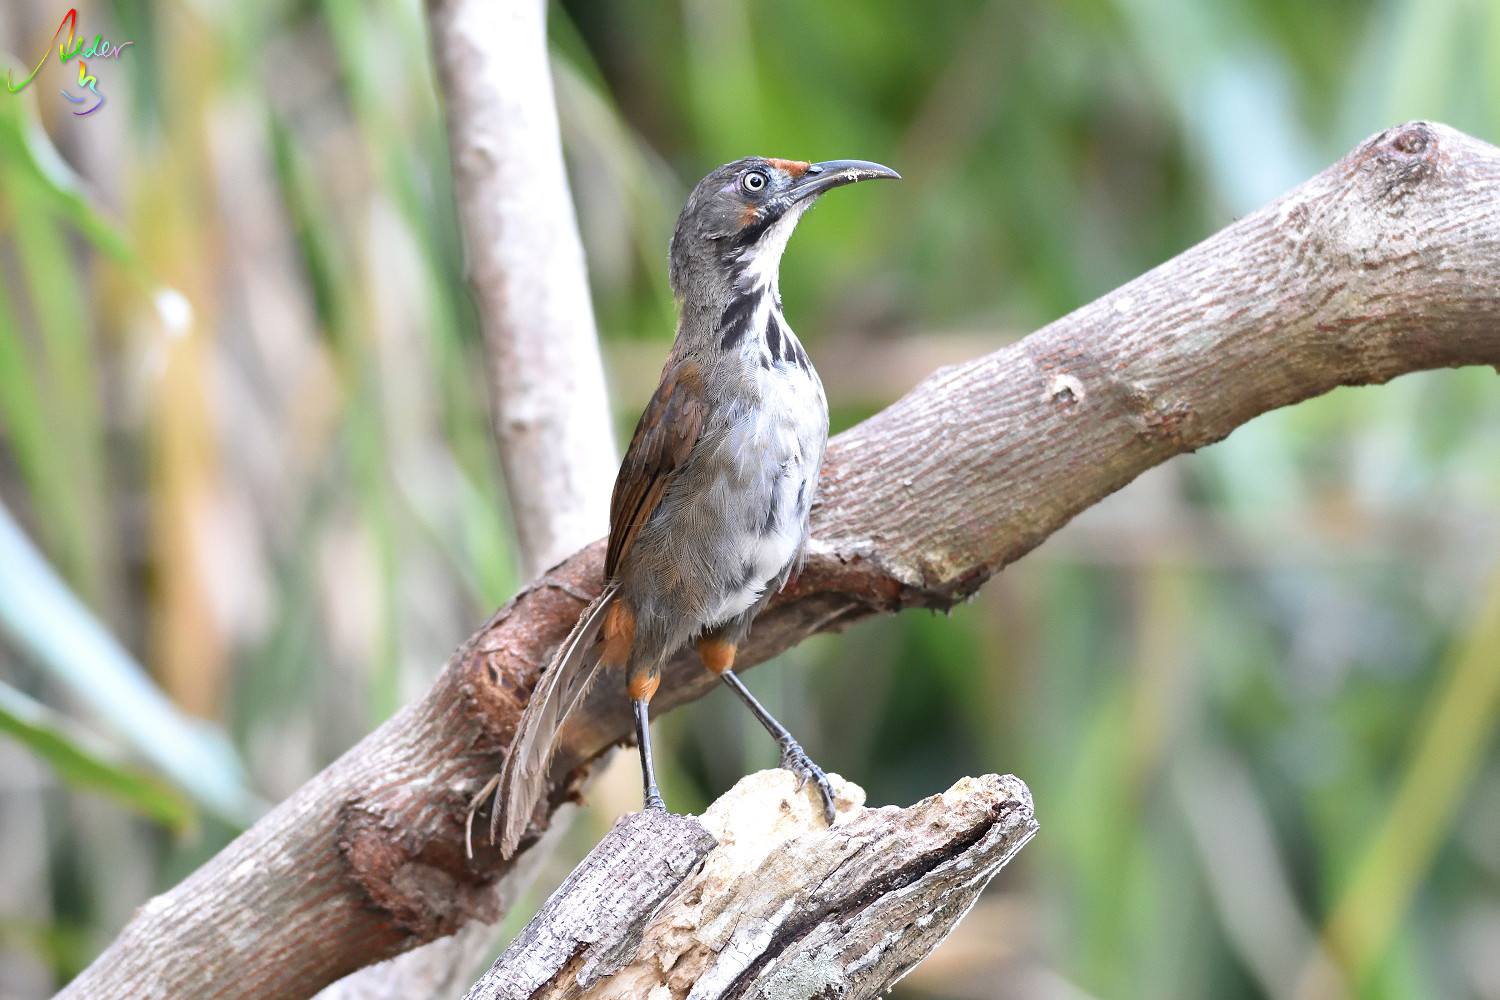 Rusty-cheeked_Scimitar_Babbler_4975